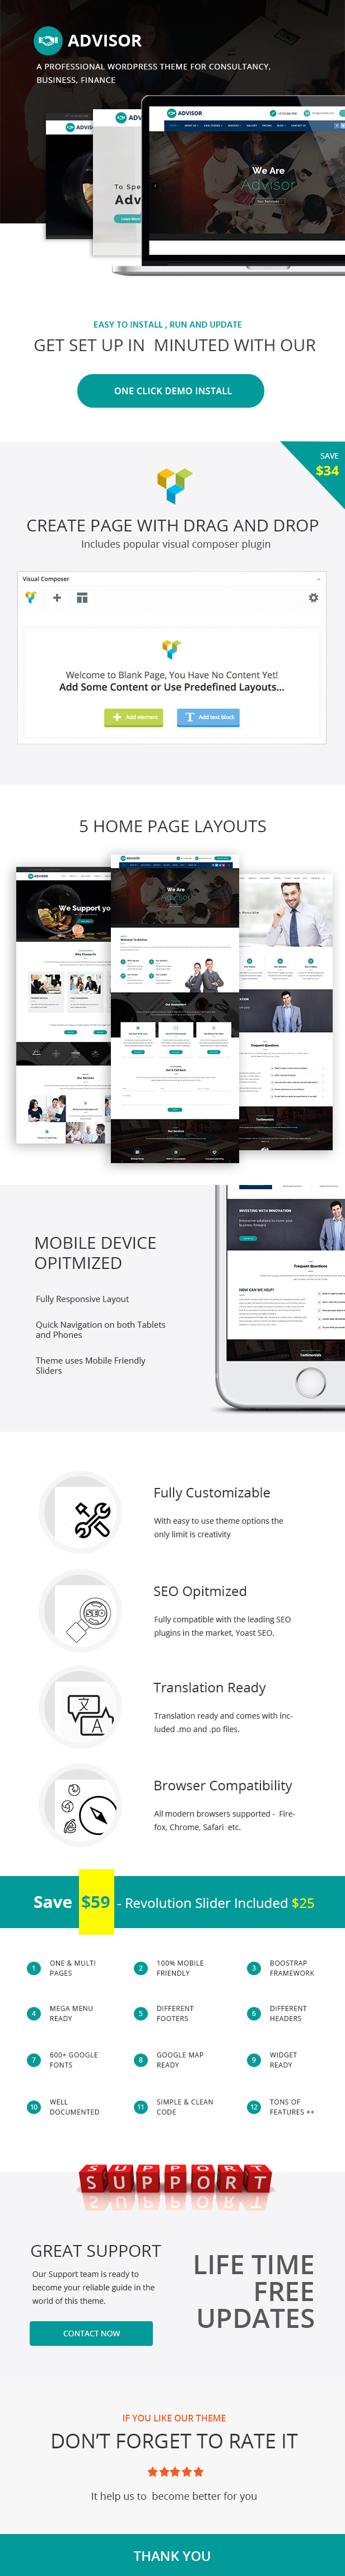 Advisor  - Startup Business & Digital Marketing WordPress Theme - 1